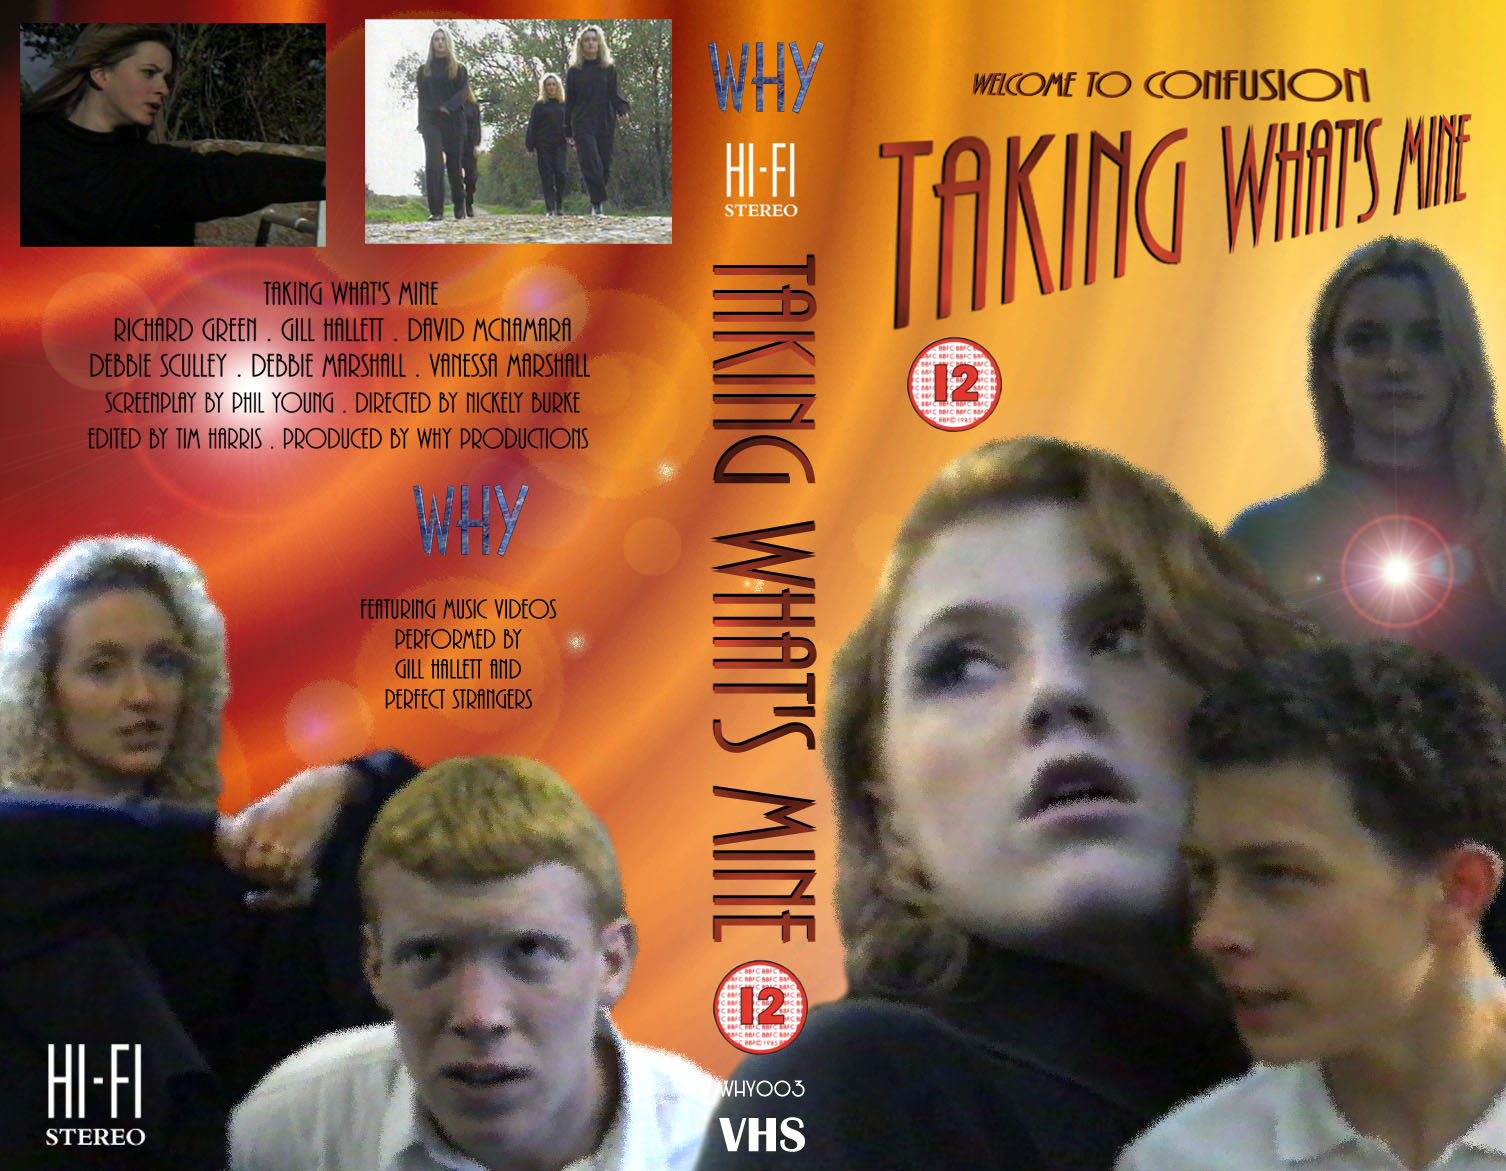 Tim Harris Website Graphics Gallery - Taking What's Mine videocover V1